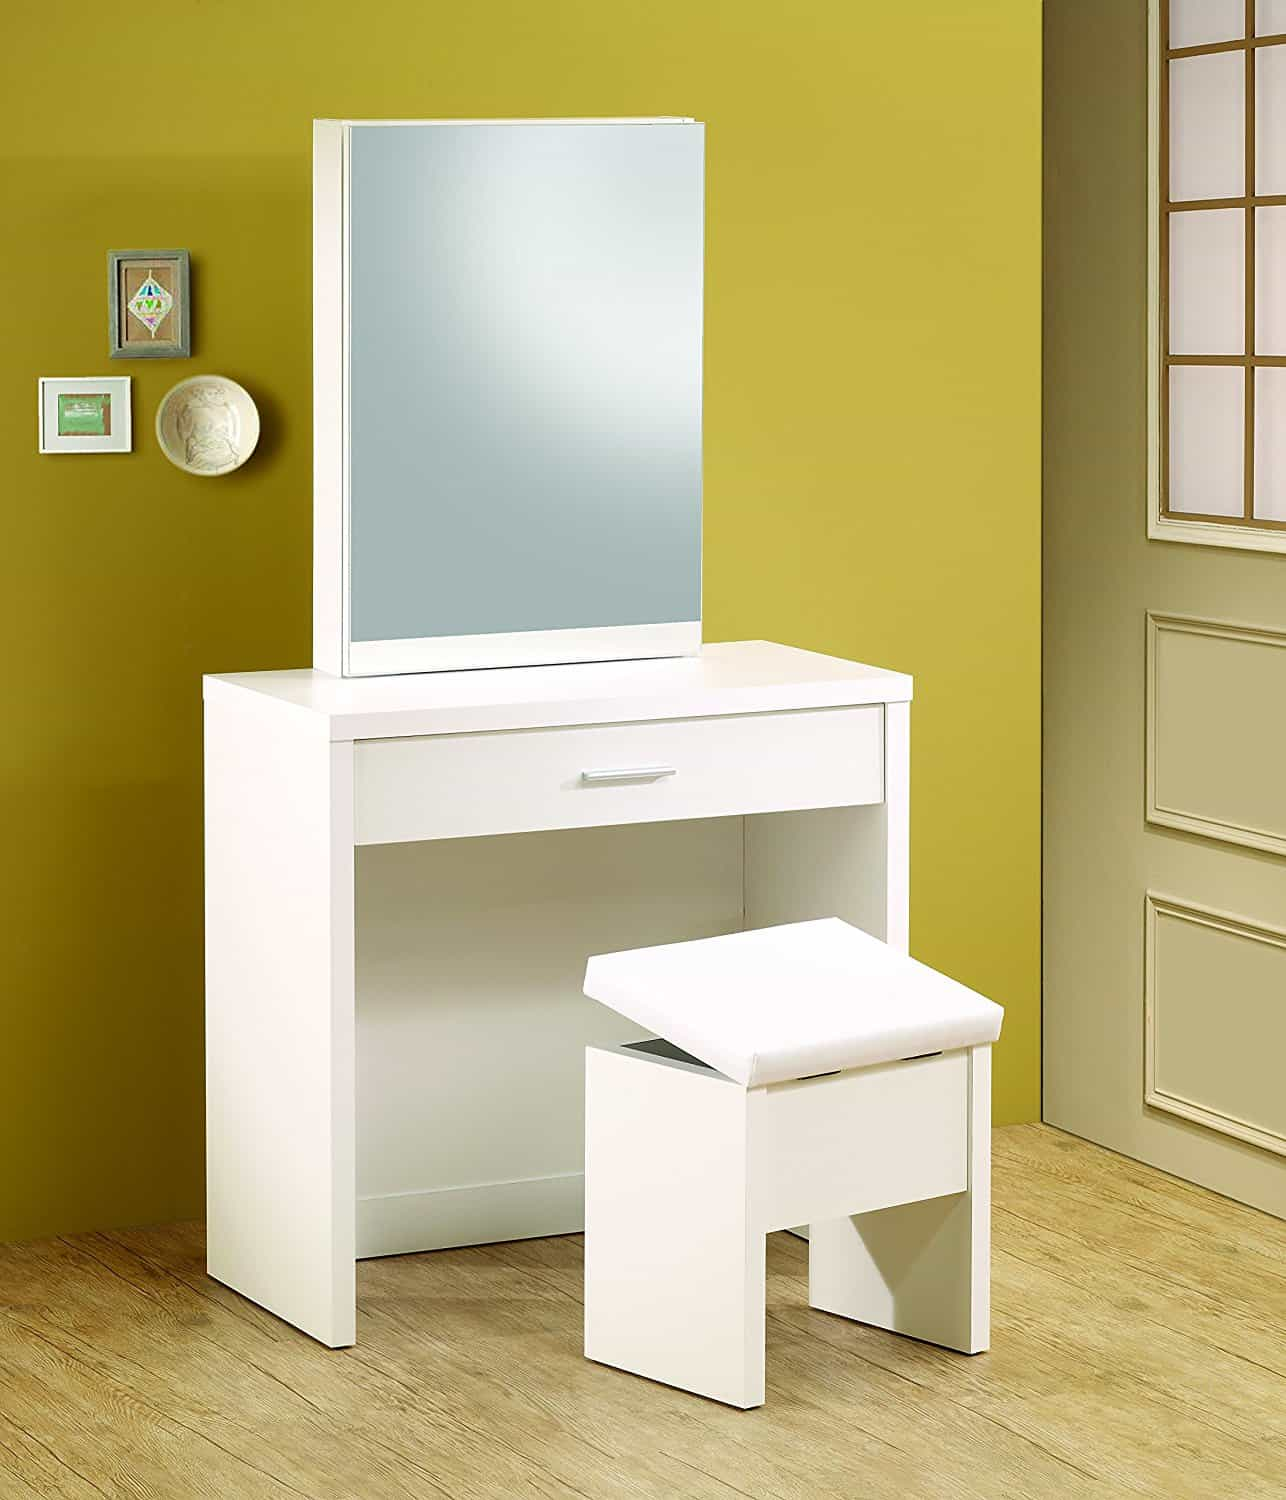 Best vanity tables for small spaces best for small spaces for Best tables for small spaces